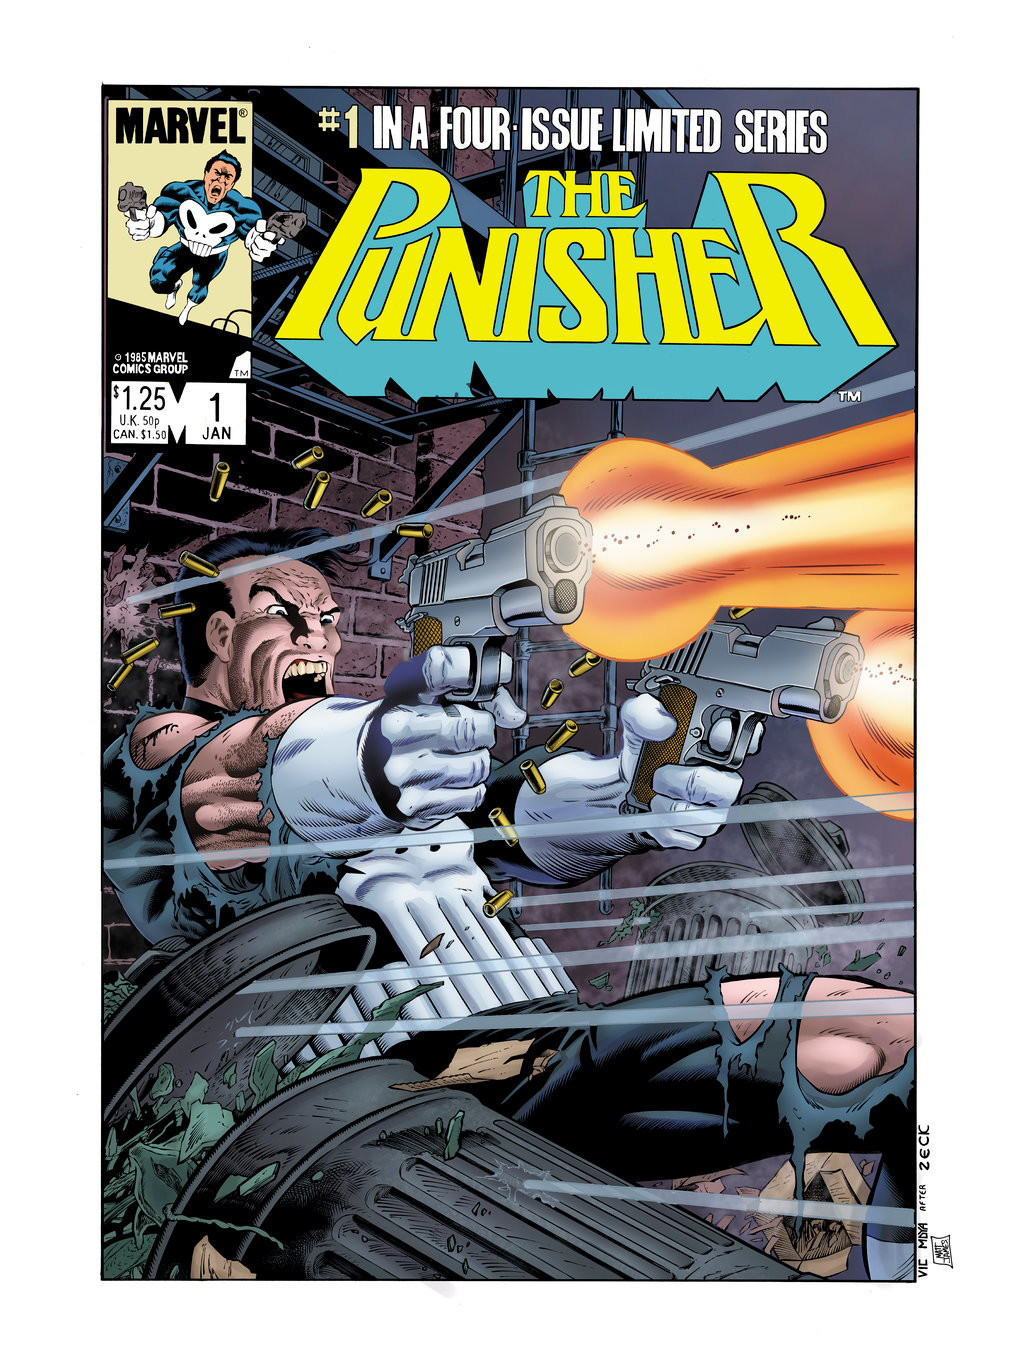 Matt james re creation of mike zeck s punisher 1 cover by mattjamescomicarts daue7jf